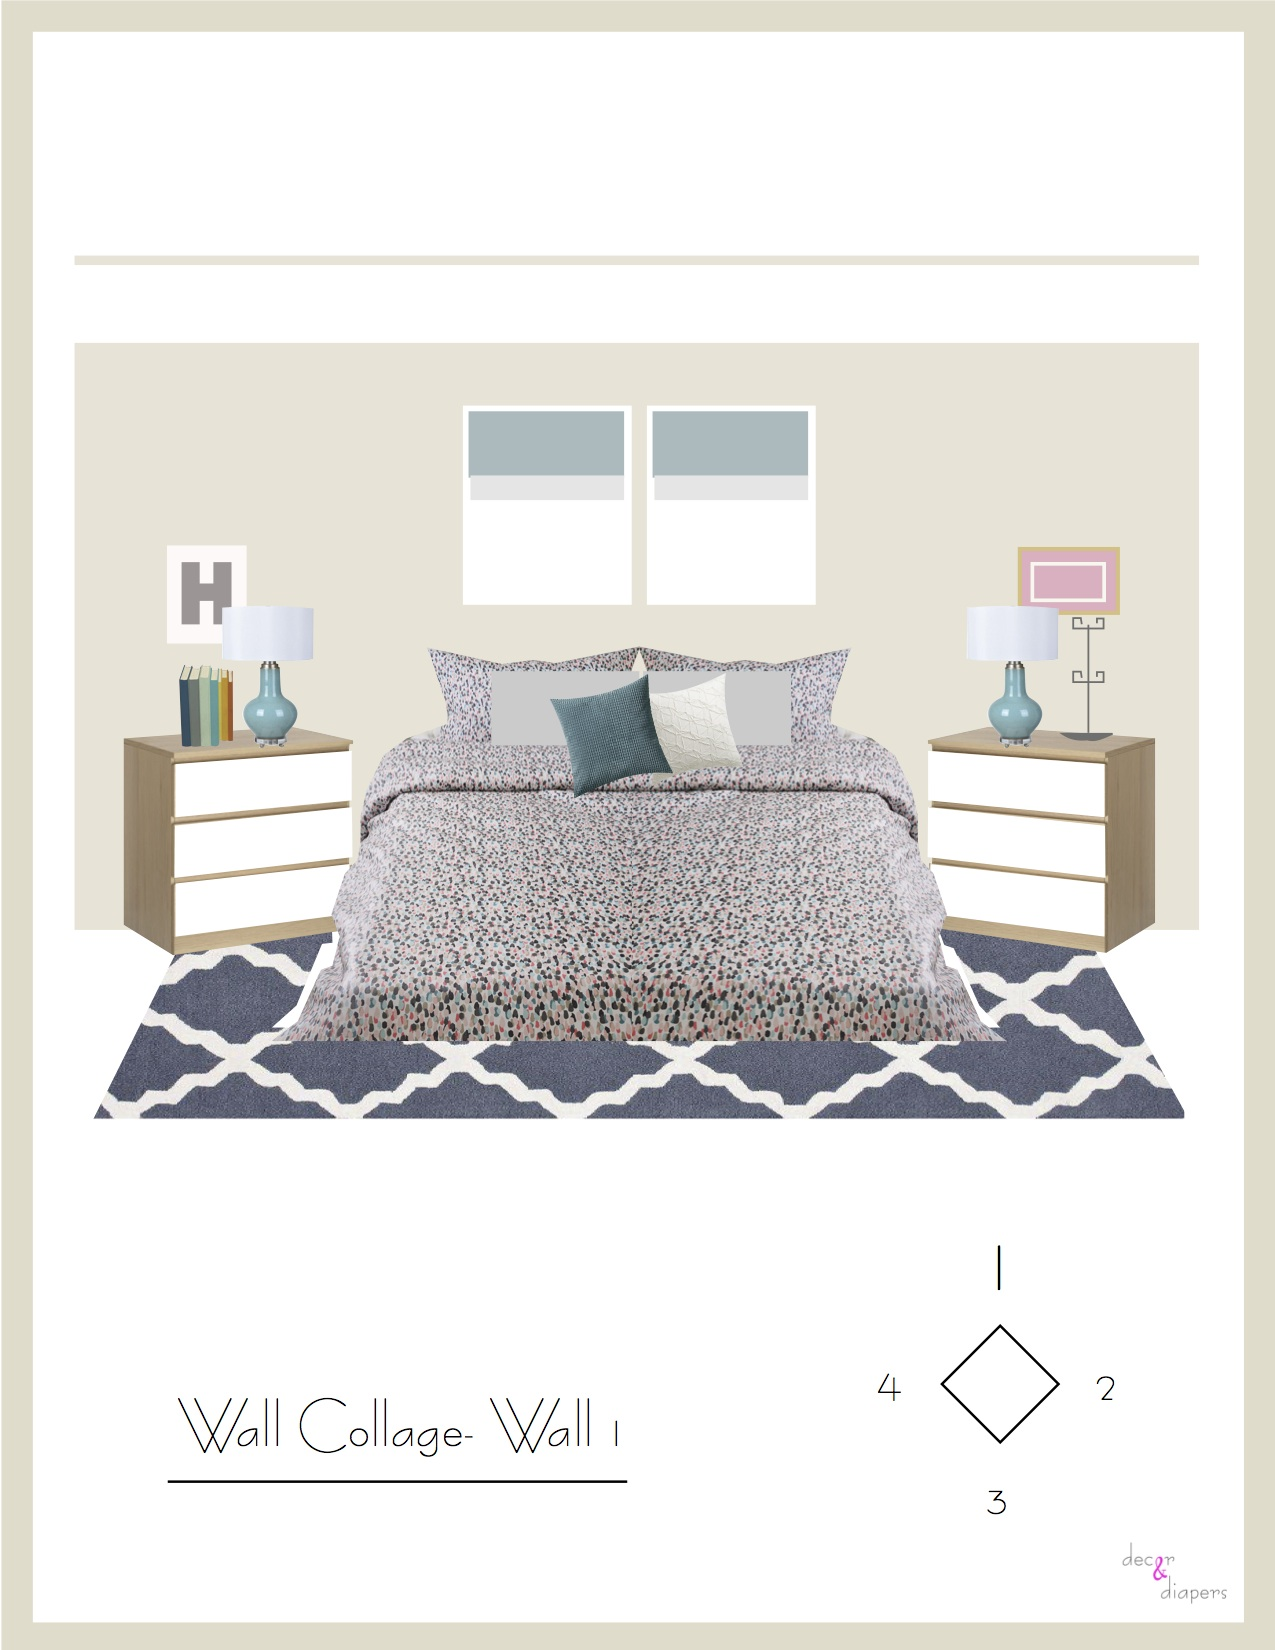 Henkin, SarahRose and Jonathan- Master Bedroom. Wall Collage.jpg